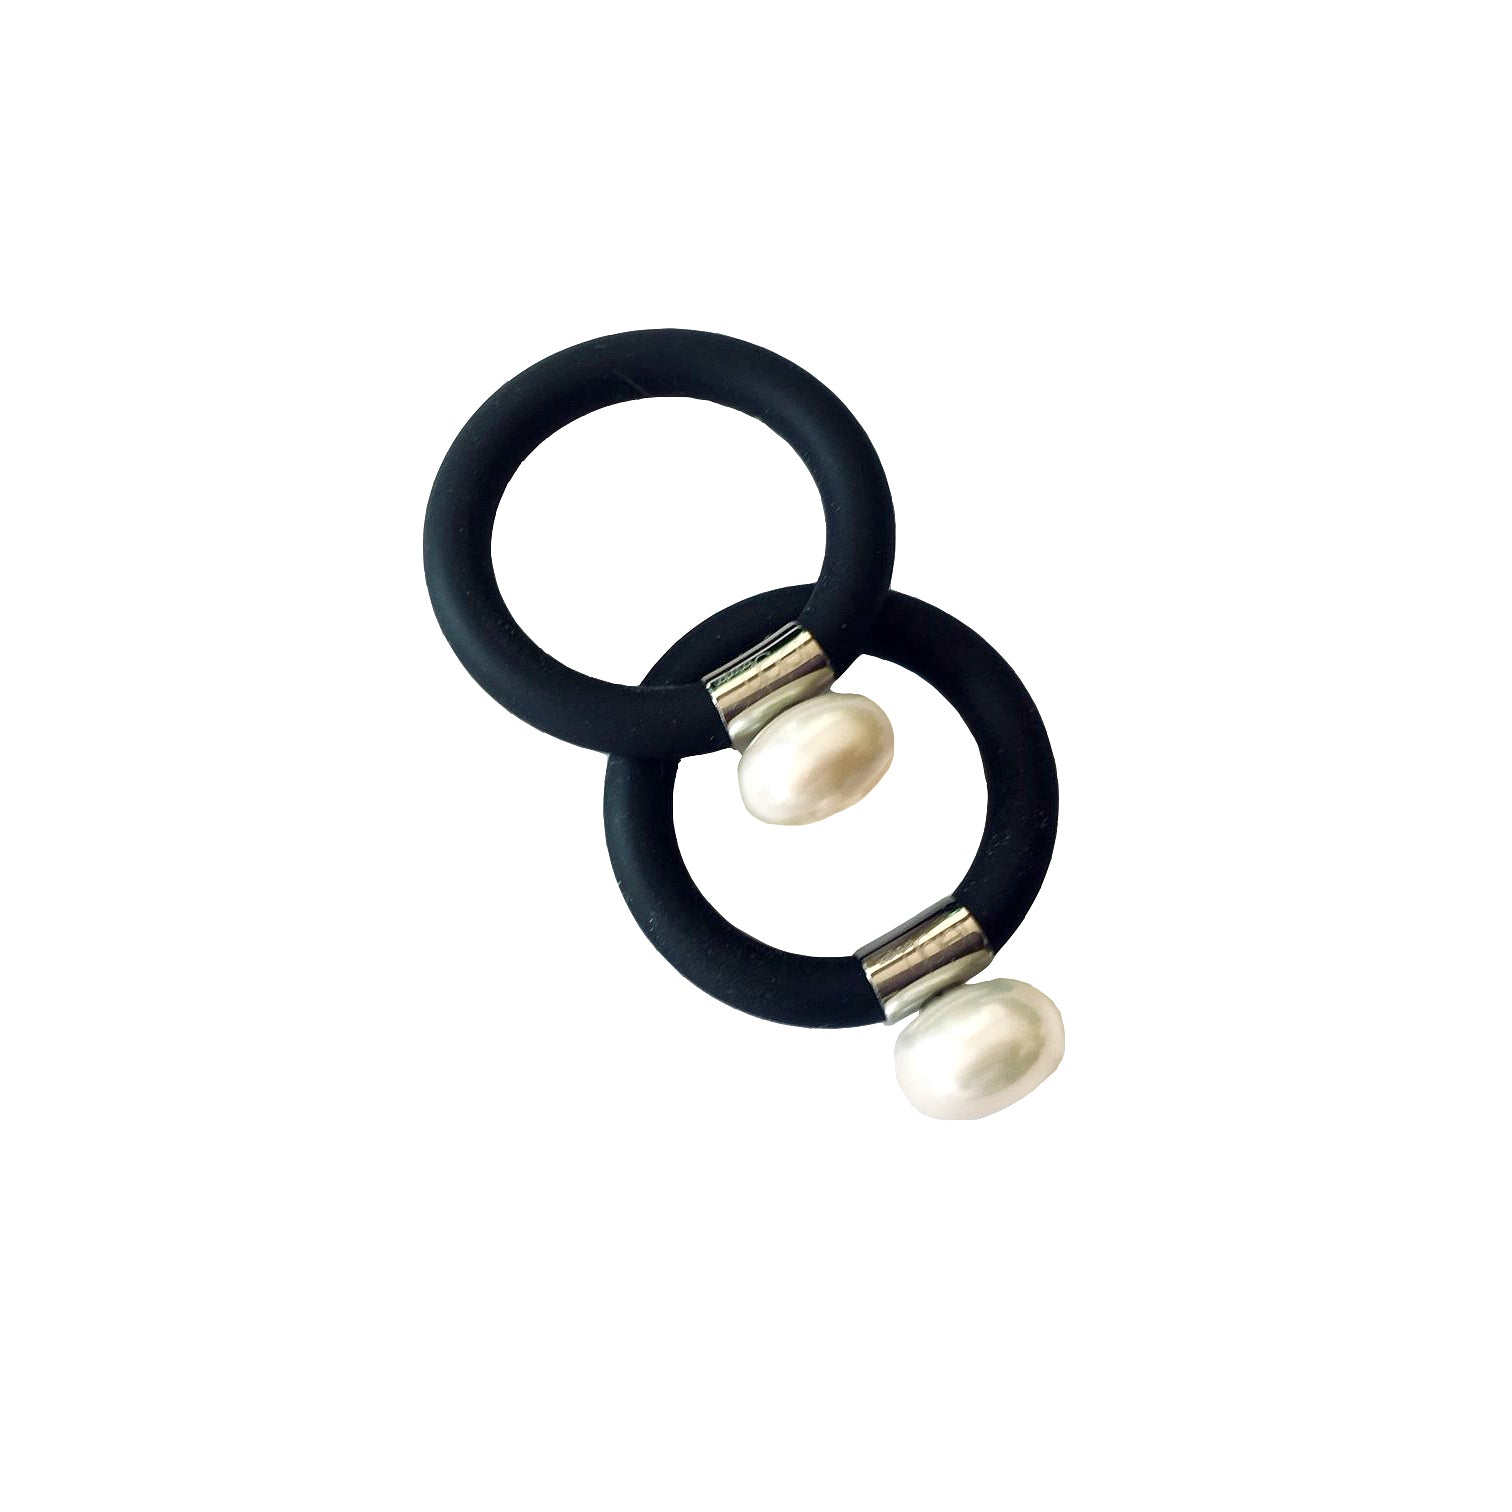 Freshwater and black neoprene ring